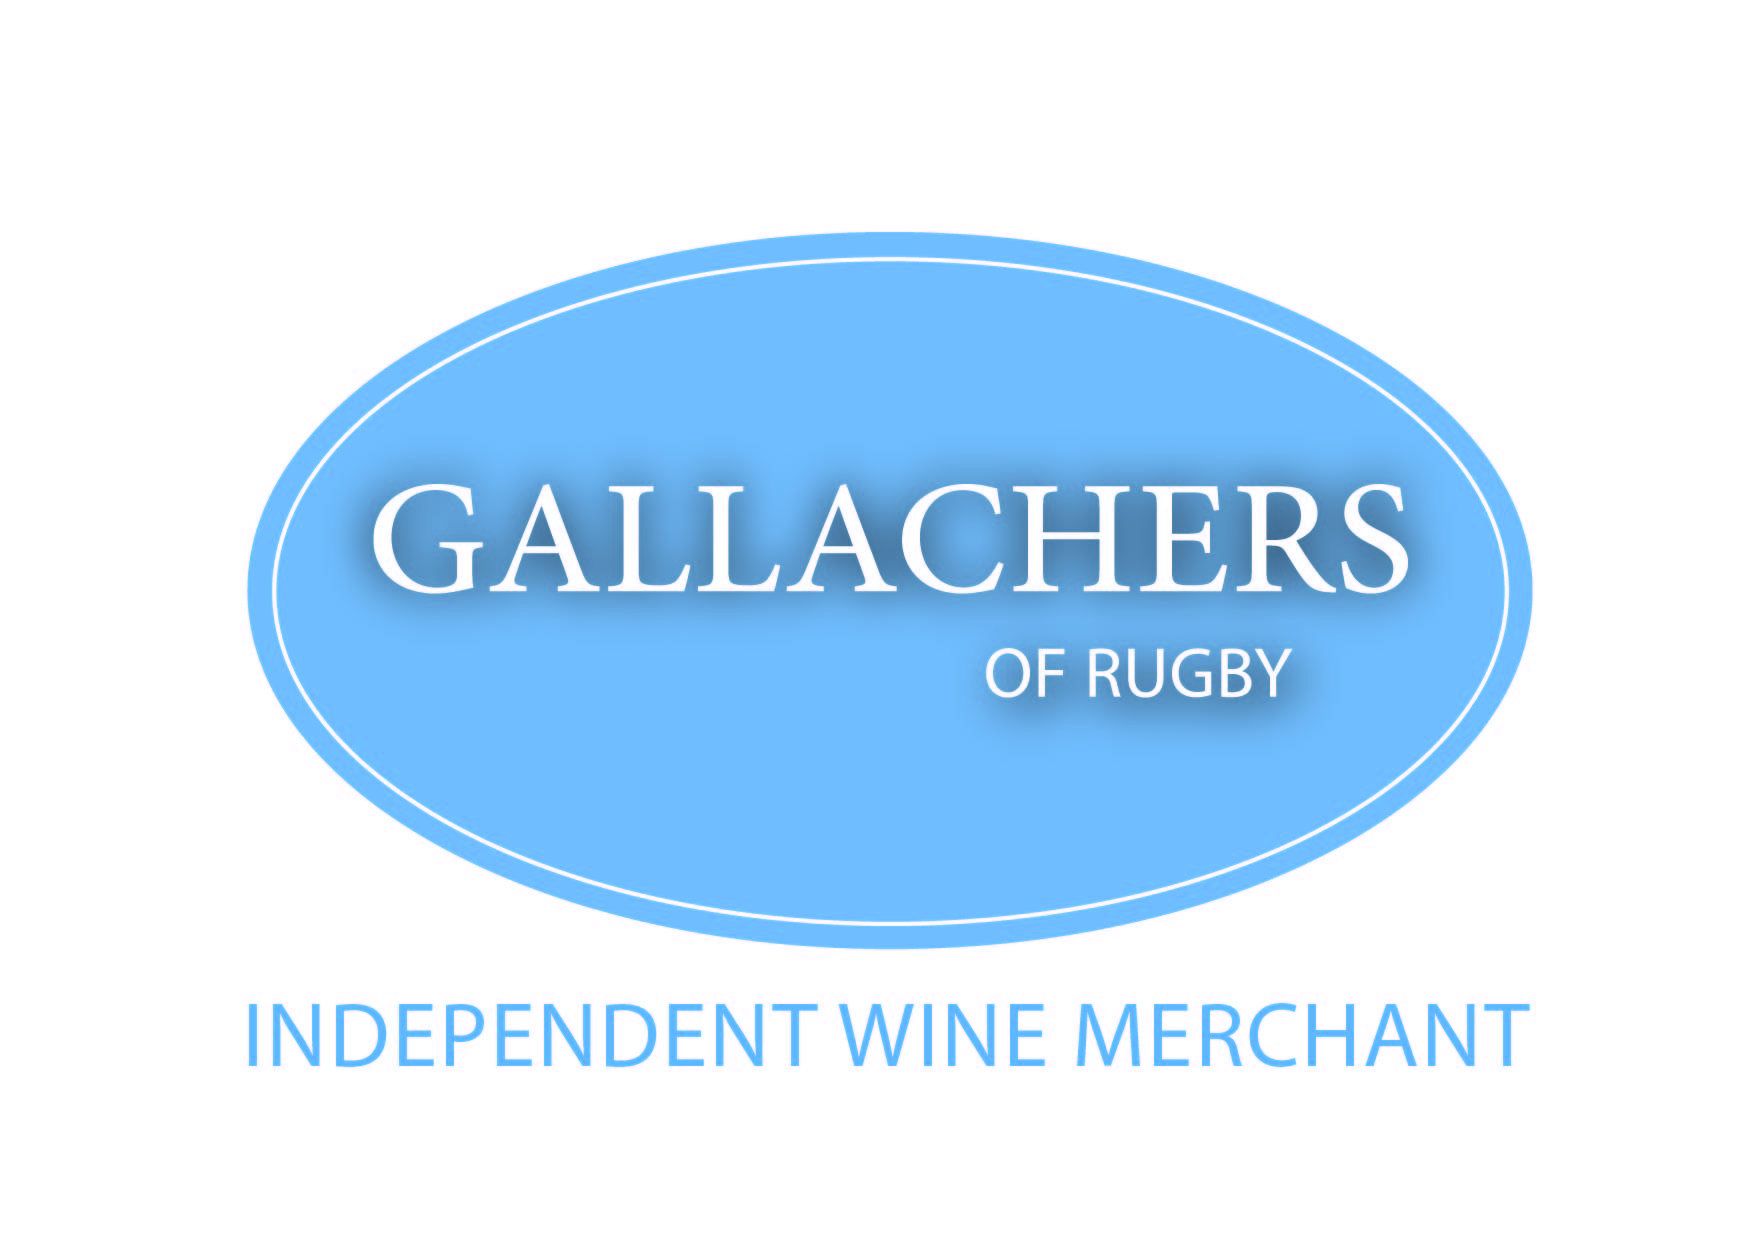 Gallachers Of Rugby